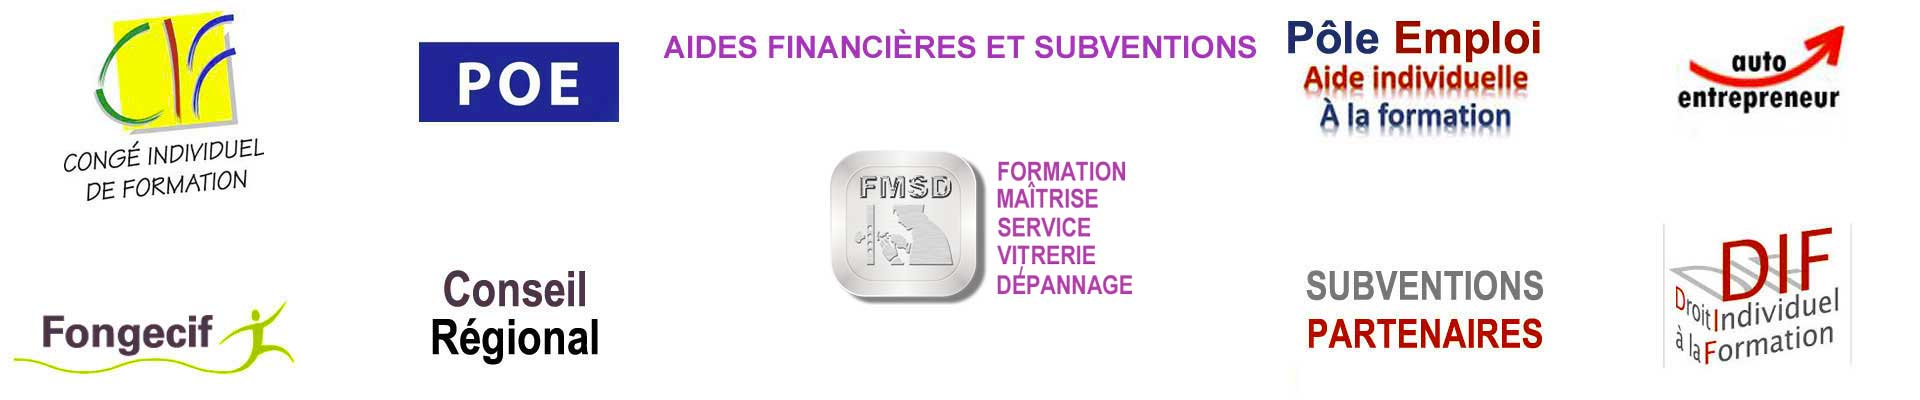 formation-vitrier-subventions